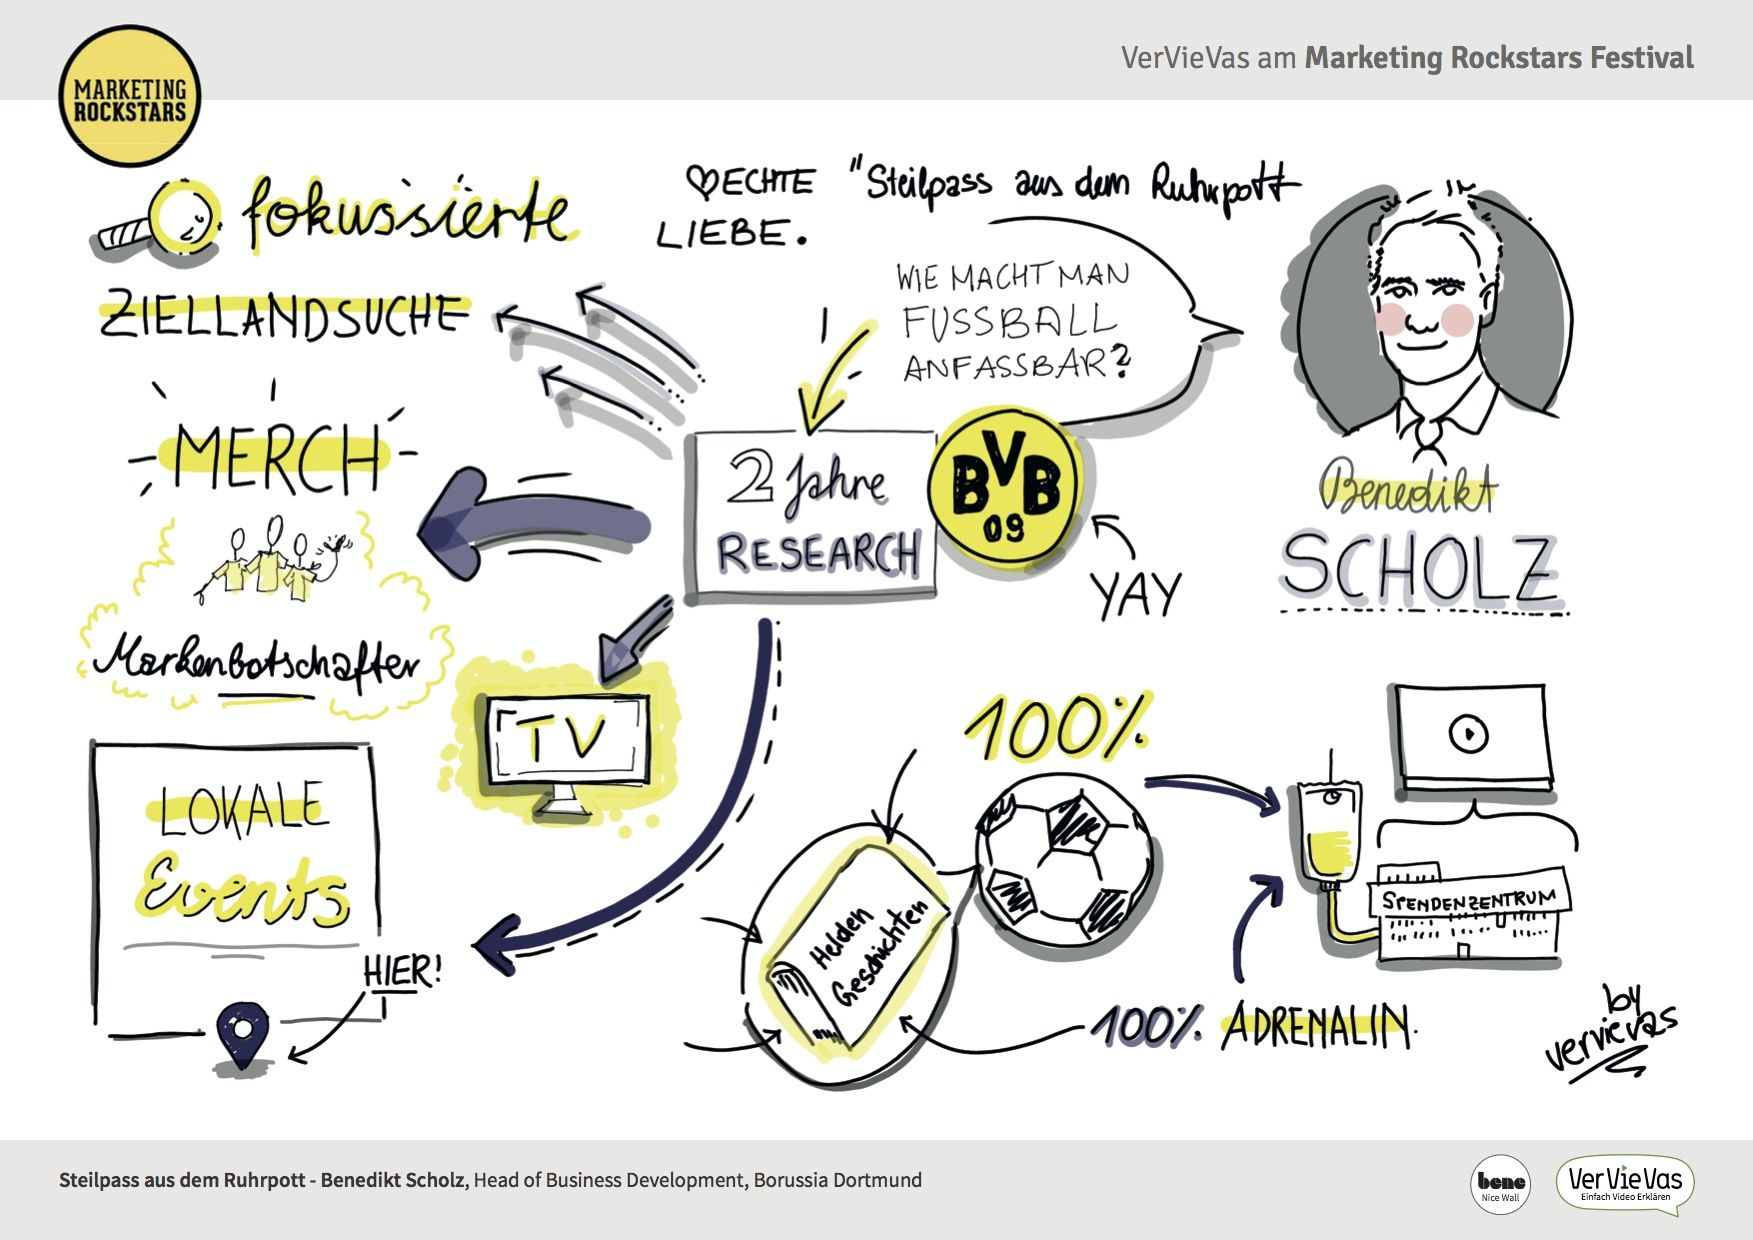 Graphic recording no 6 by vervievas live marketing rockstars graphic recording no 6 by vervievas live marketing rockstars festival 2015 in graz austria pronofoot35fo Images